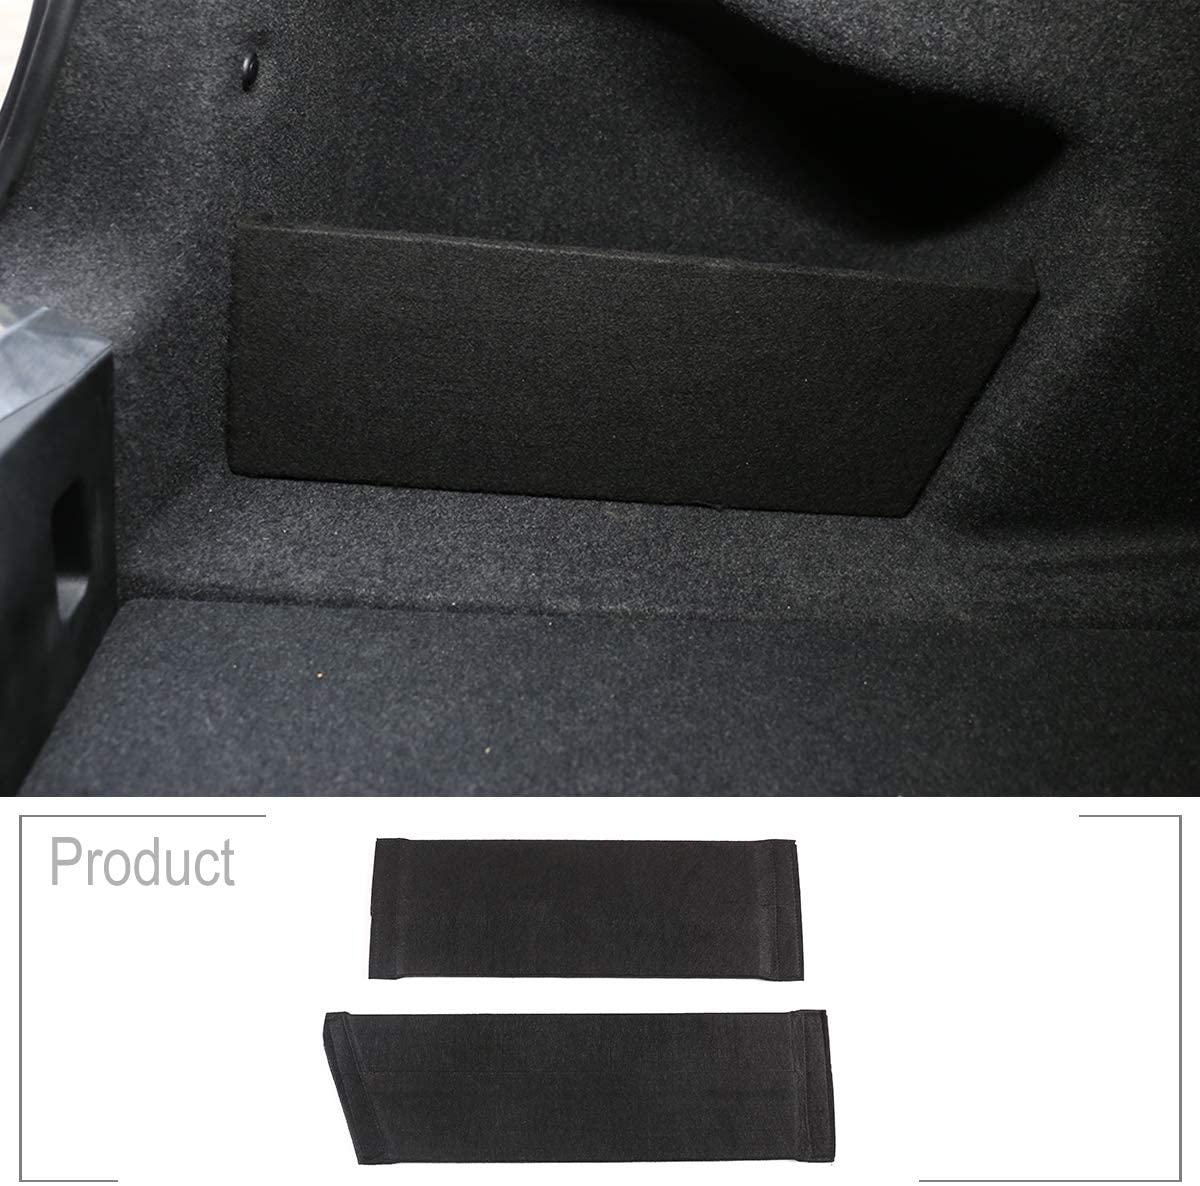 TongSheng for BMW 3 Series G20 G28 320li 325li 2020 Flannel Material Black Inner Rear Trunk Box Compartment Panel Trunk Organizers Automobile 2pcs/Set